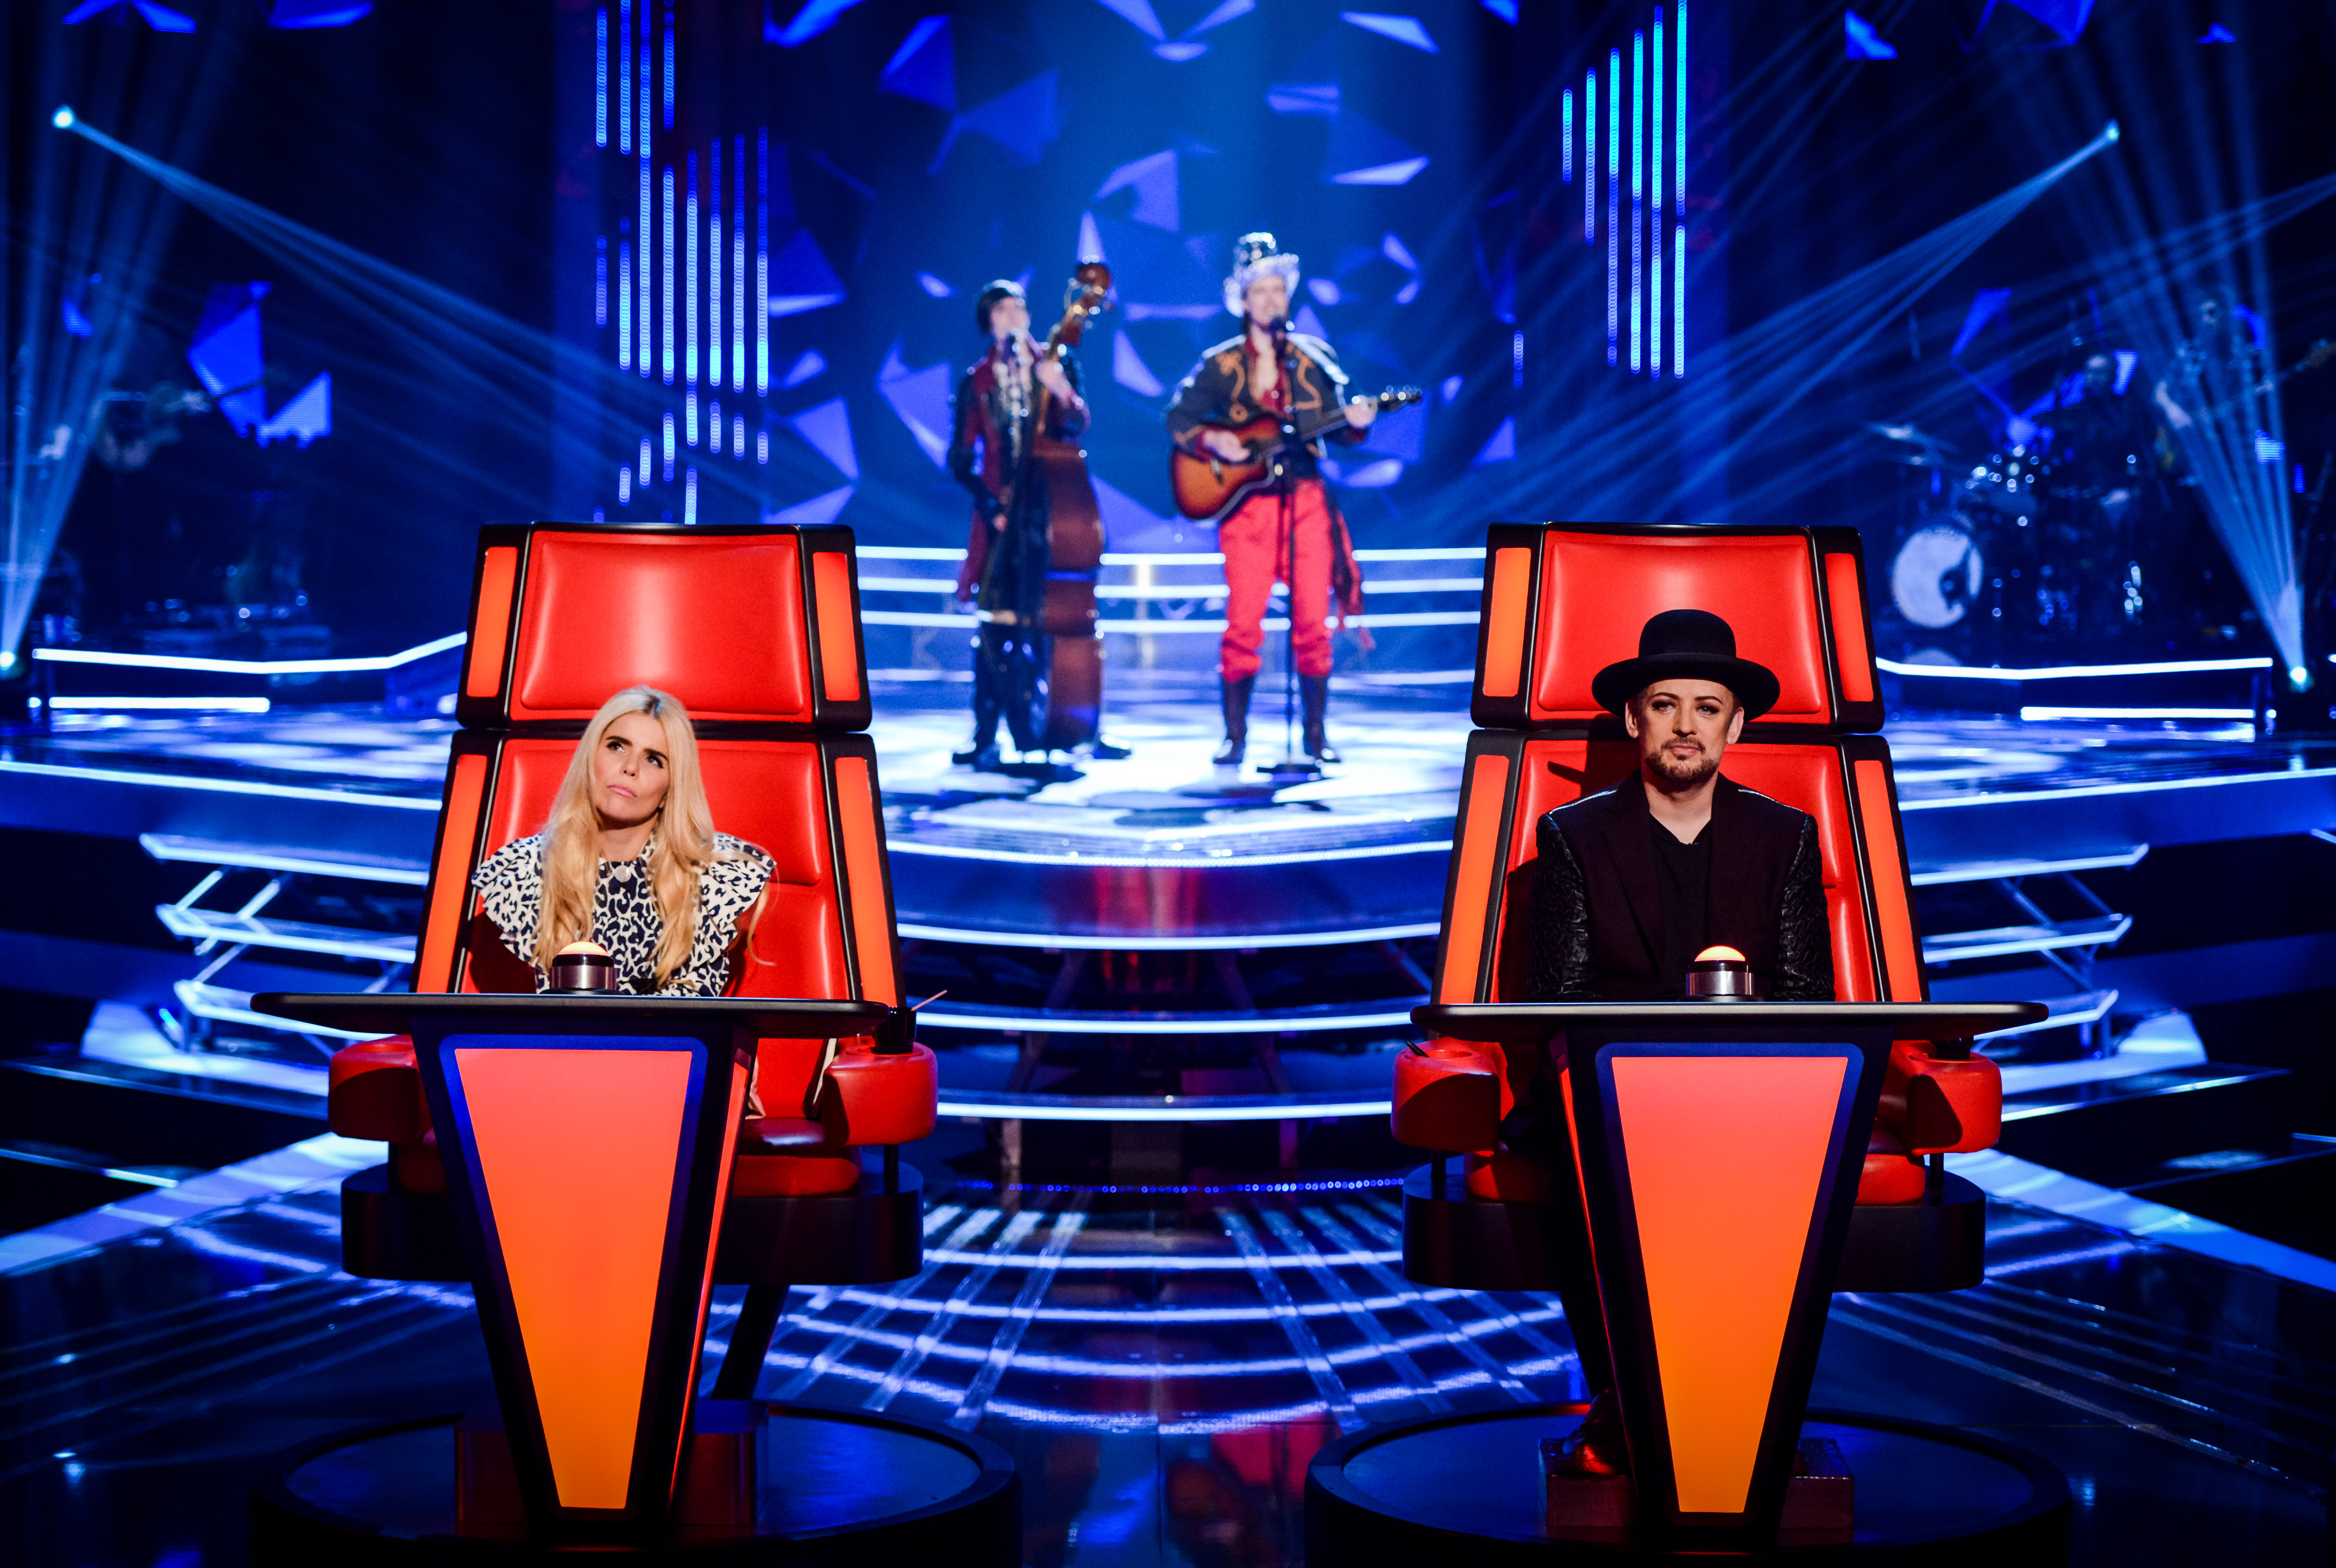 The Voice 2016: 15 things we noticed during the fourth blind auditions